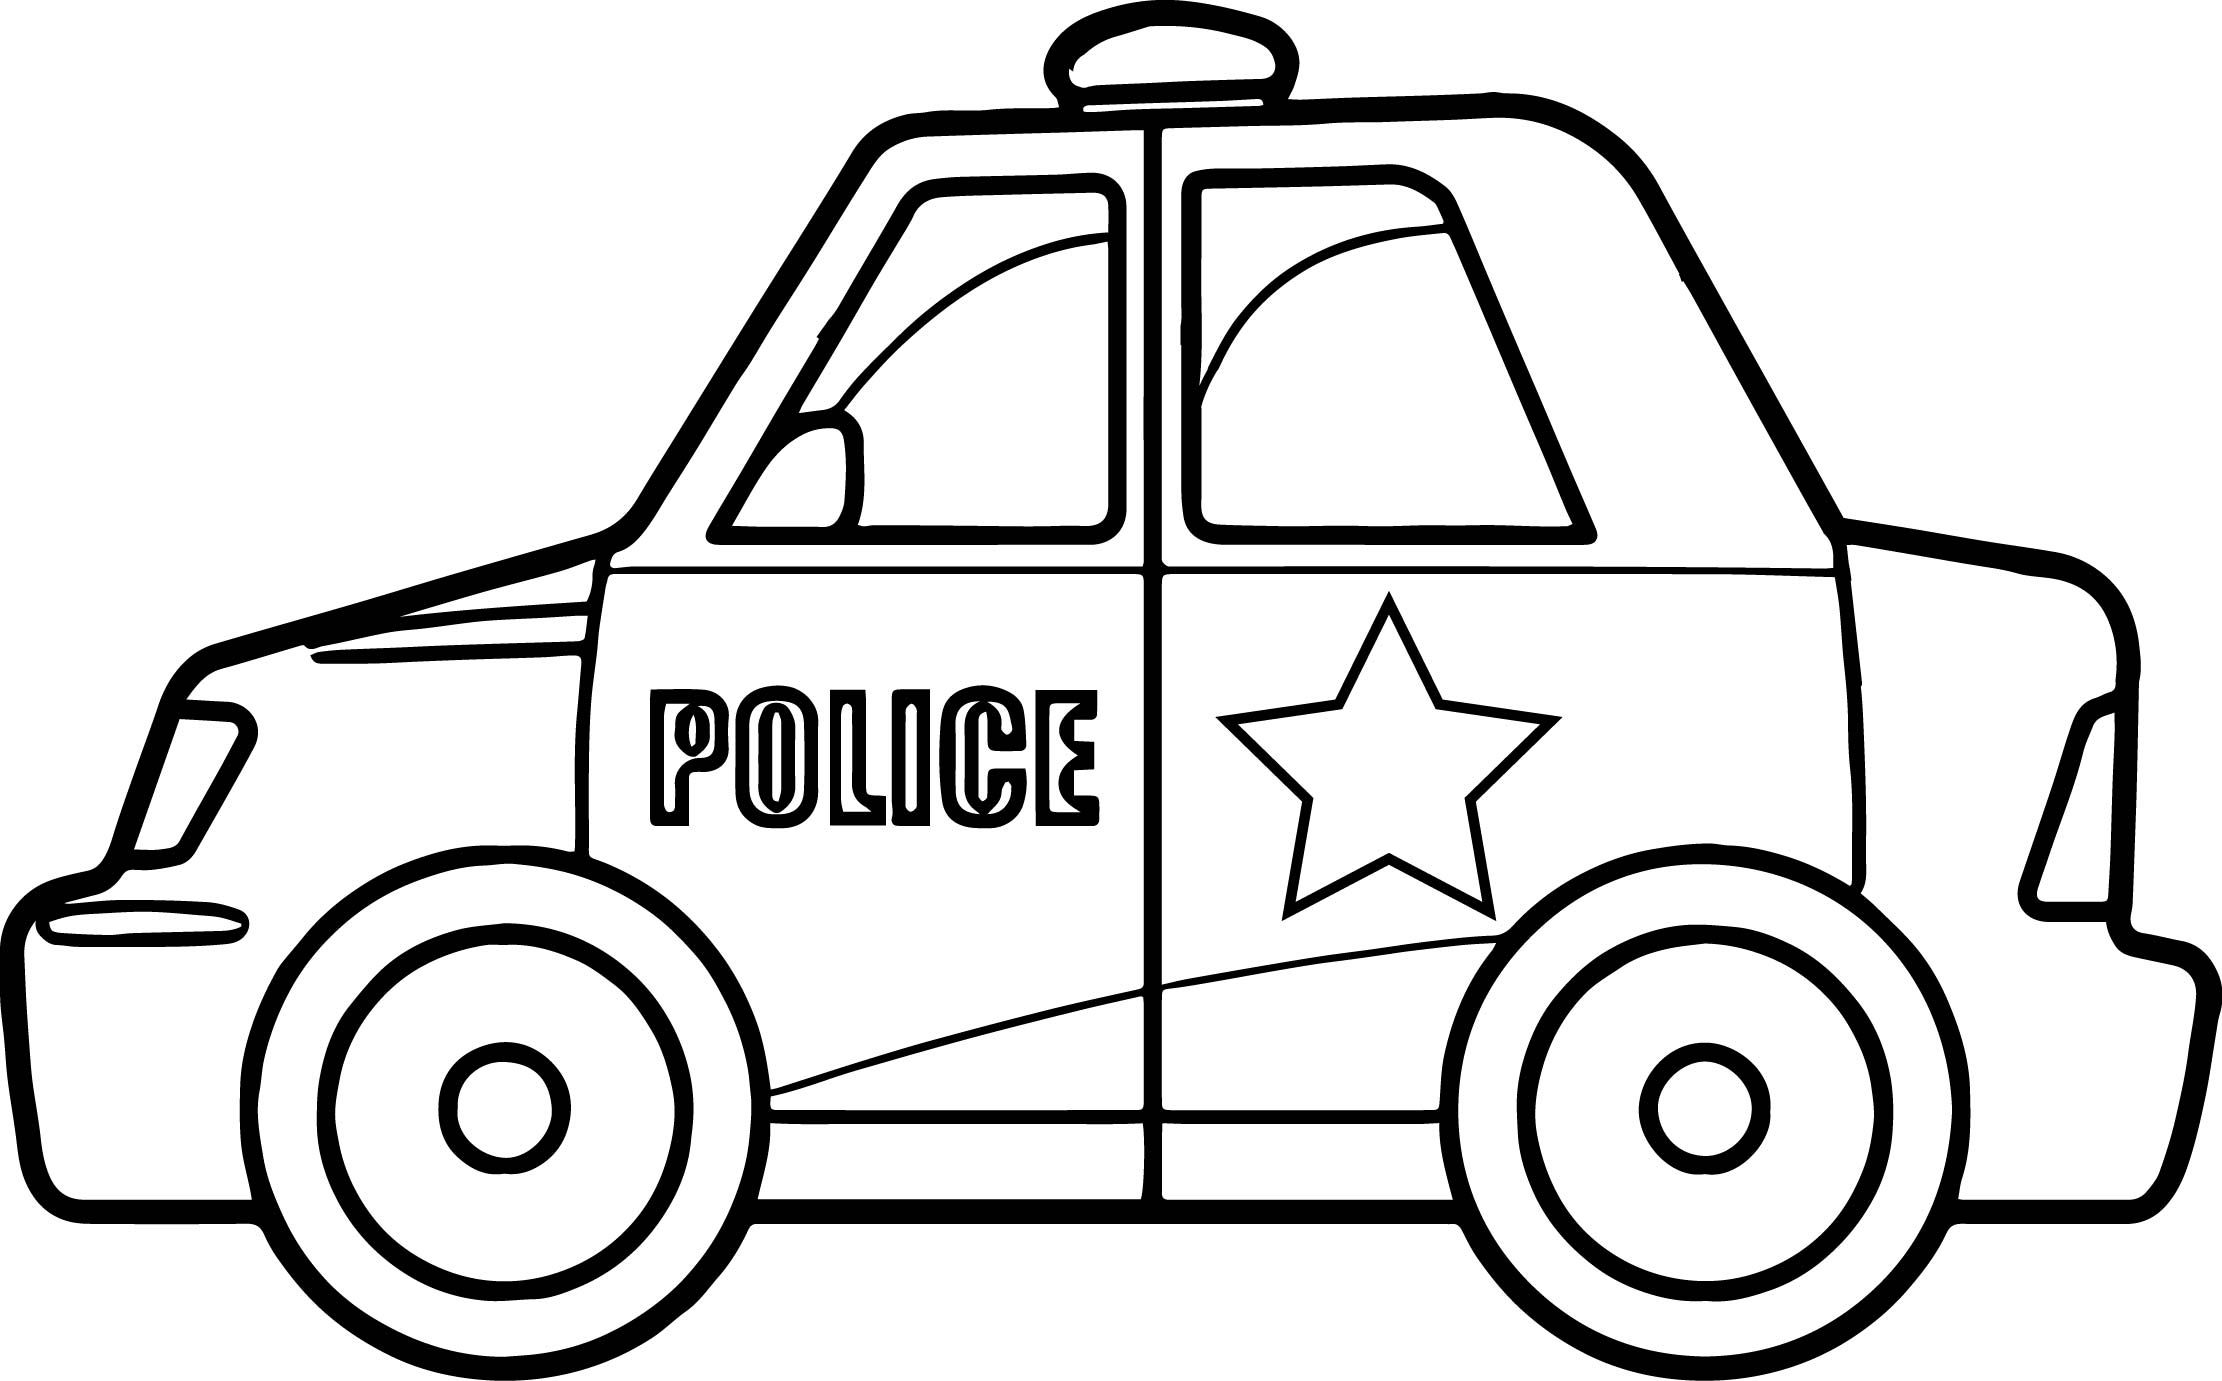 Cop Car Coloring Pages Download Free Books In Police Cars Coloring Pages Truck Coloring Pages Coloring Pages